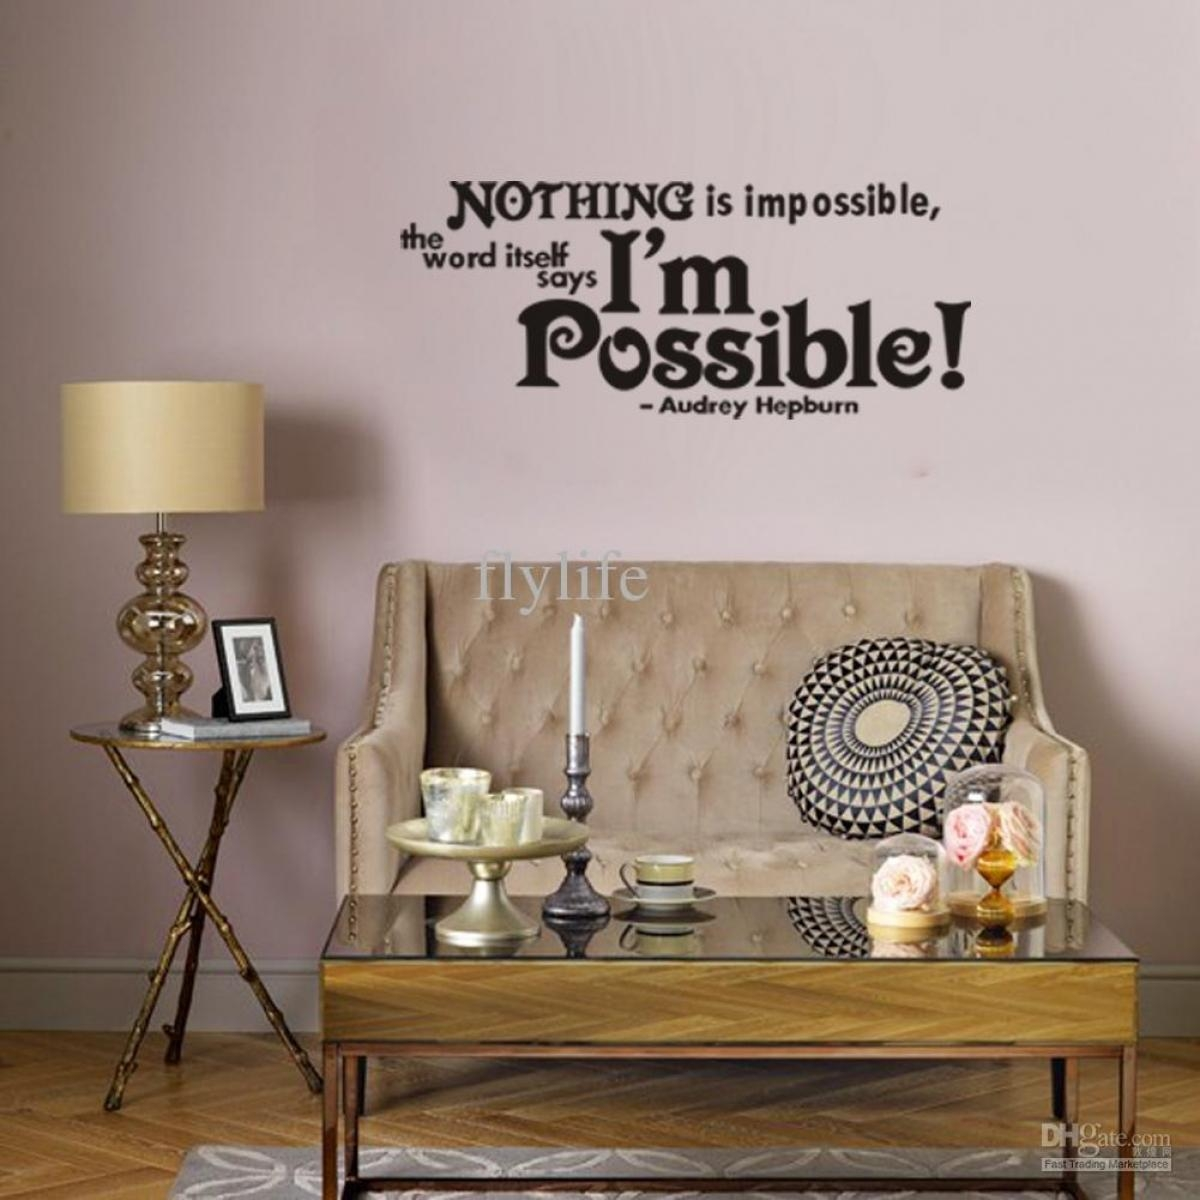 Wall Decal: Awesome Walmart Wall Decals Quotes Quotes Decals With Regard To Walmart Wall Stickers (View 18 of 20)